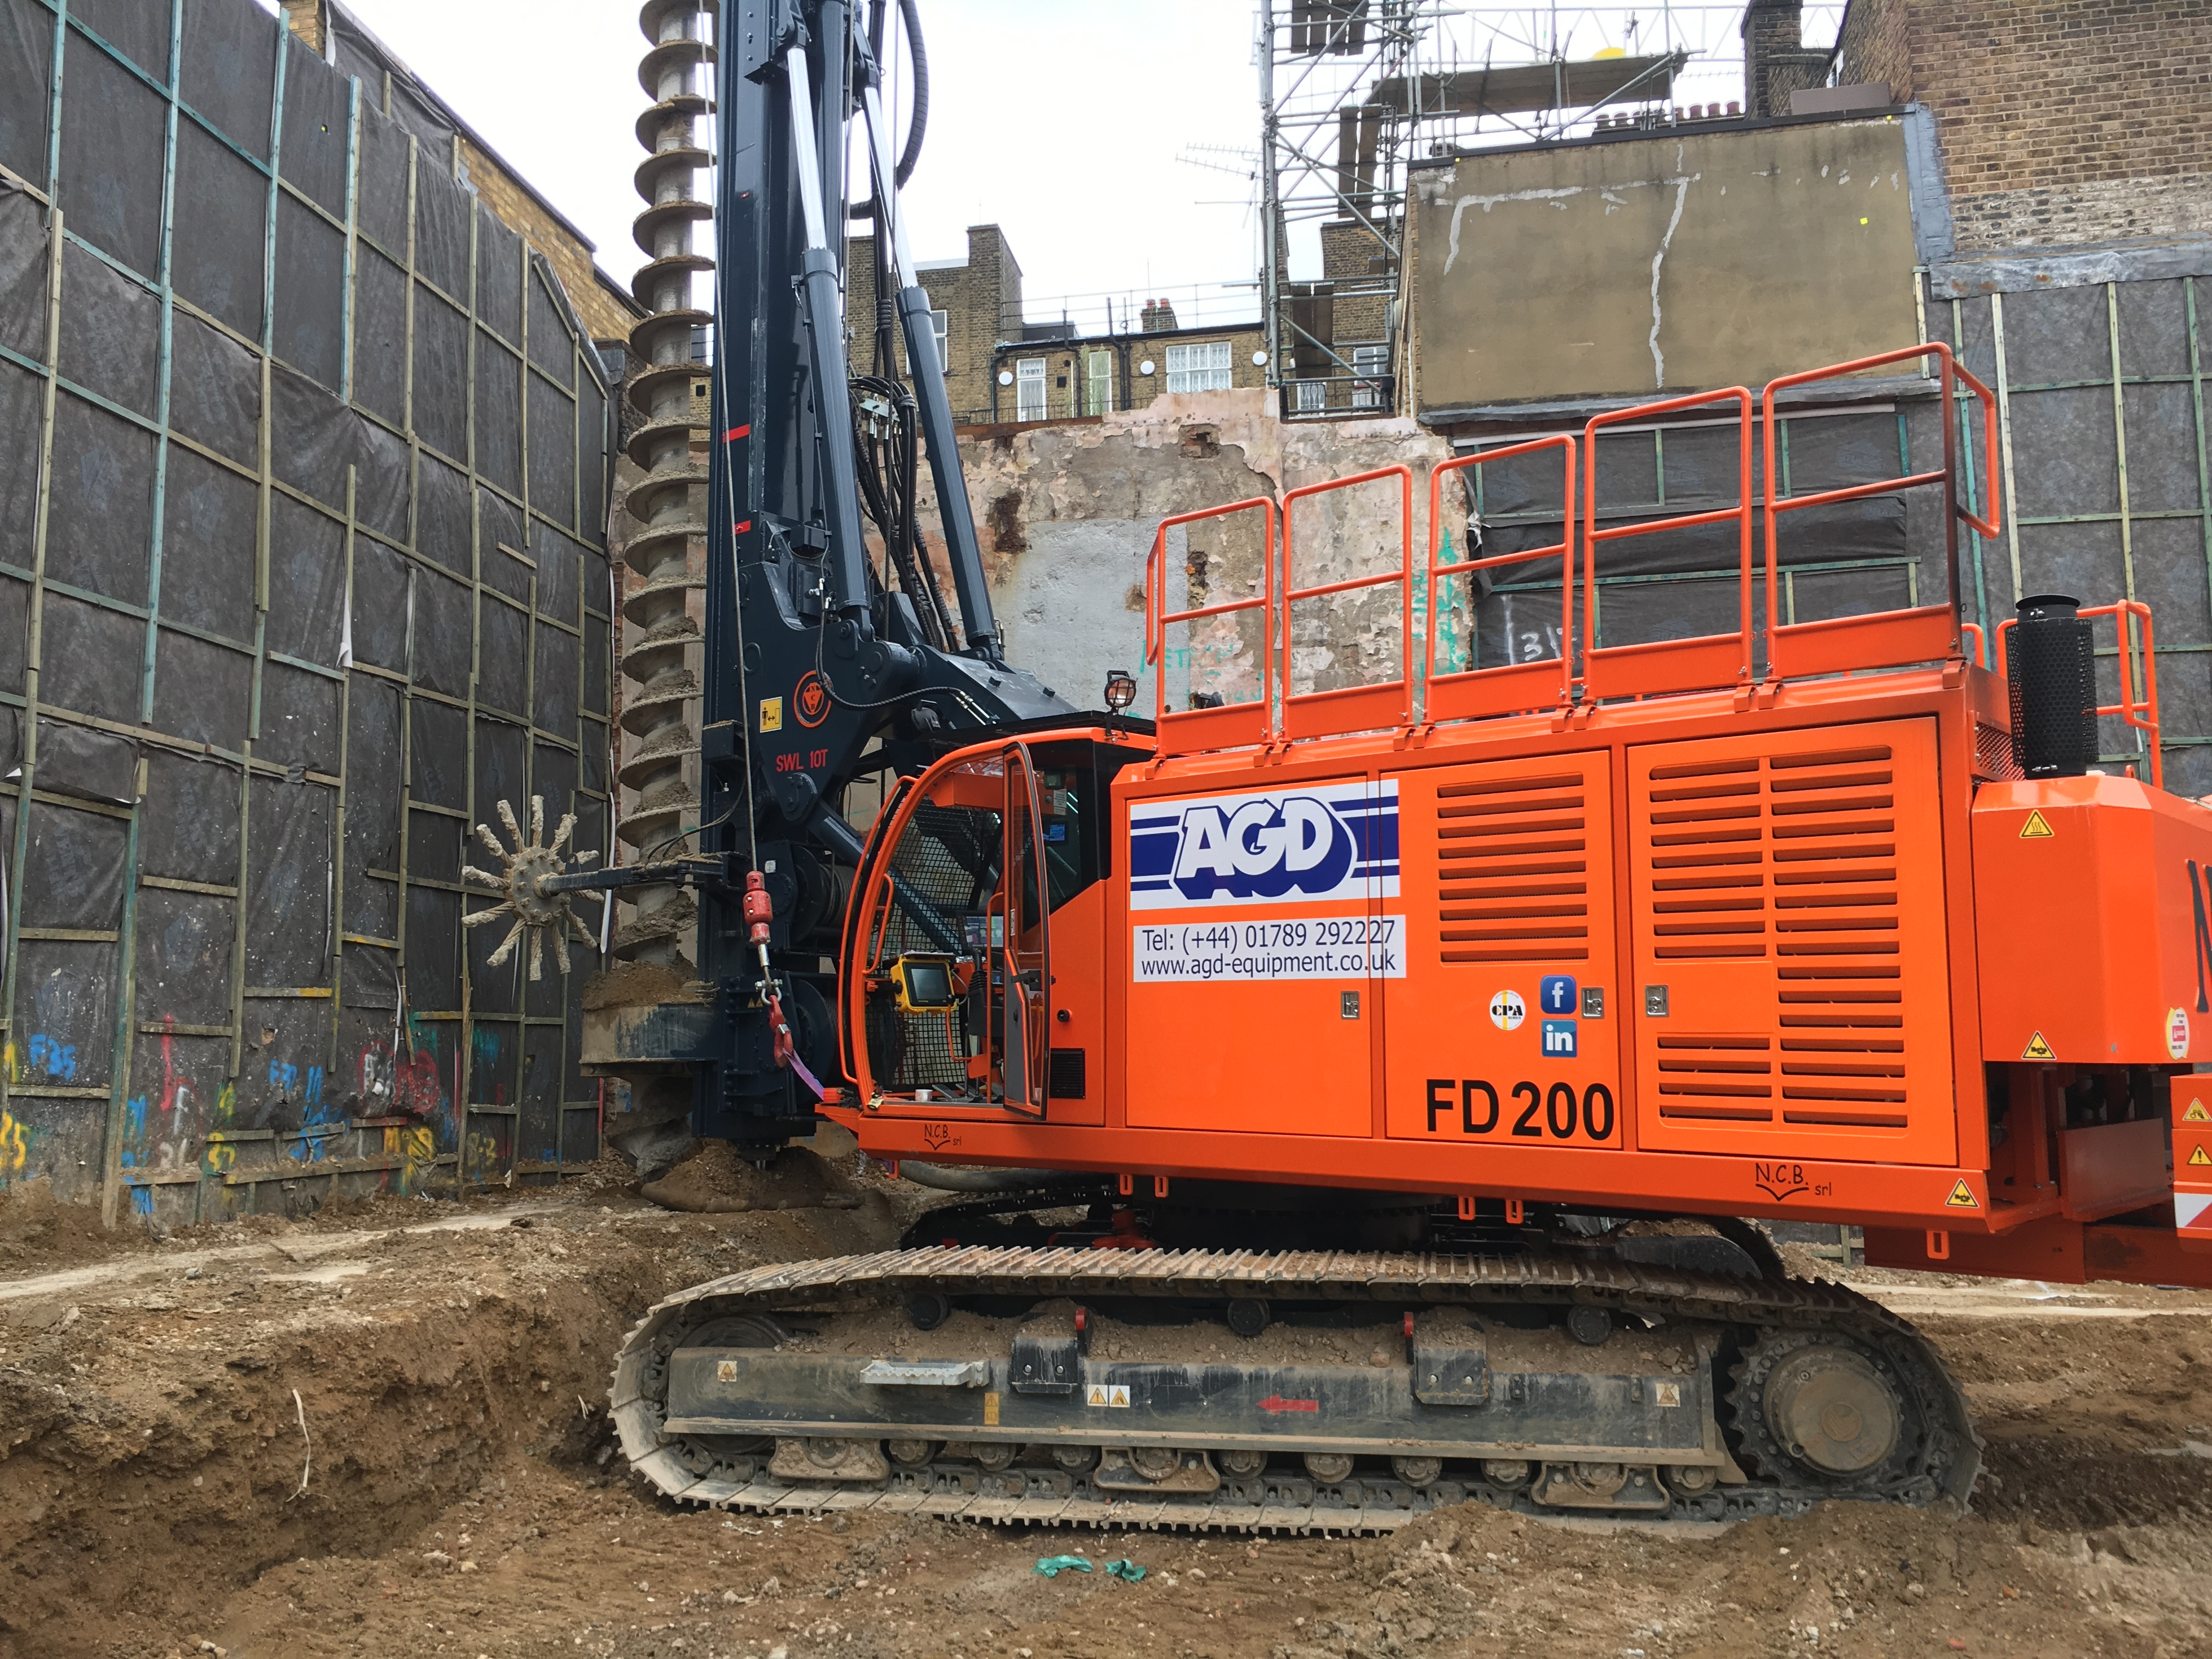 Powerful NCB FD200 CFA rig enters the UK market